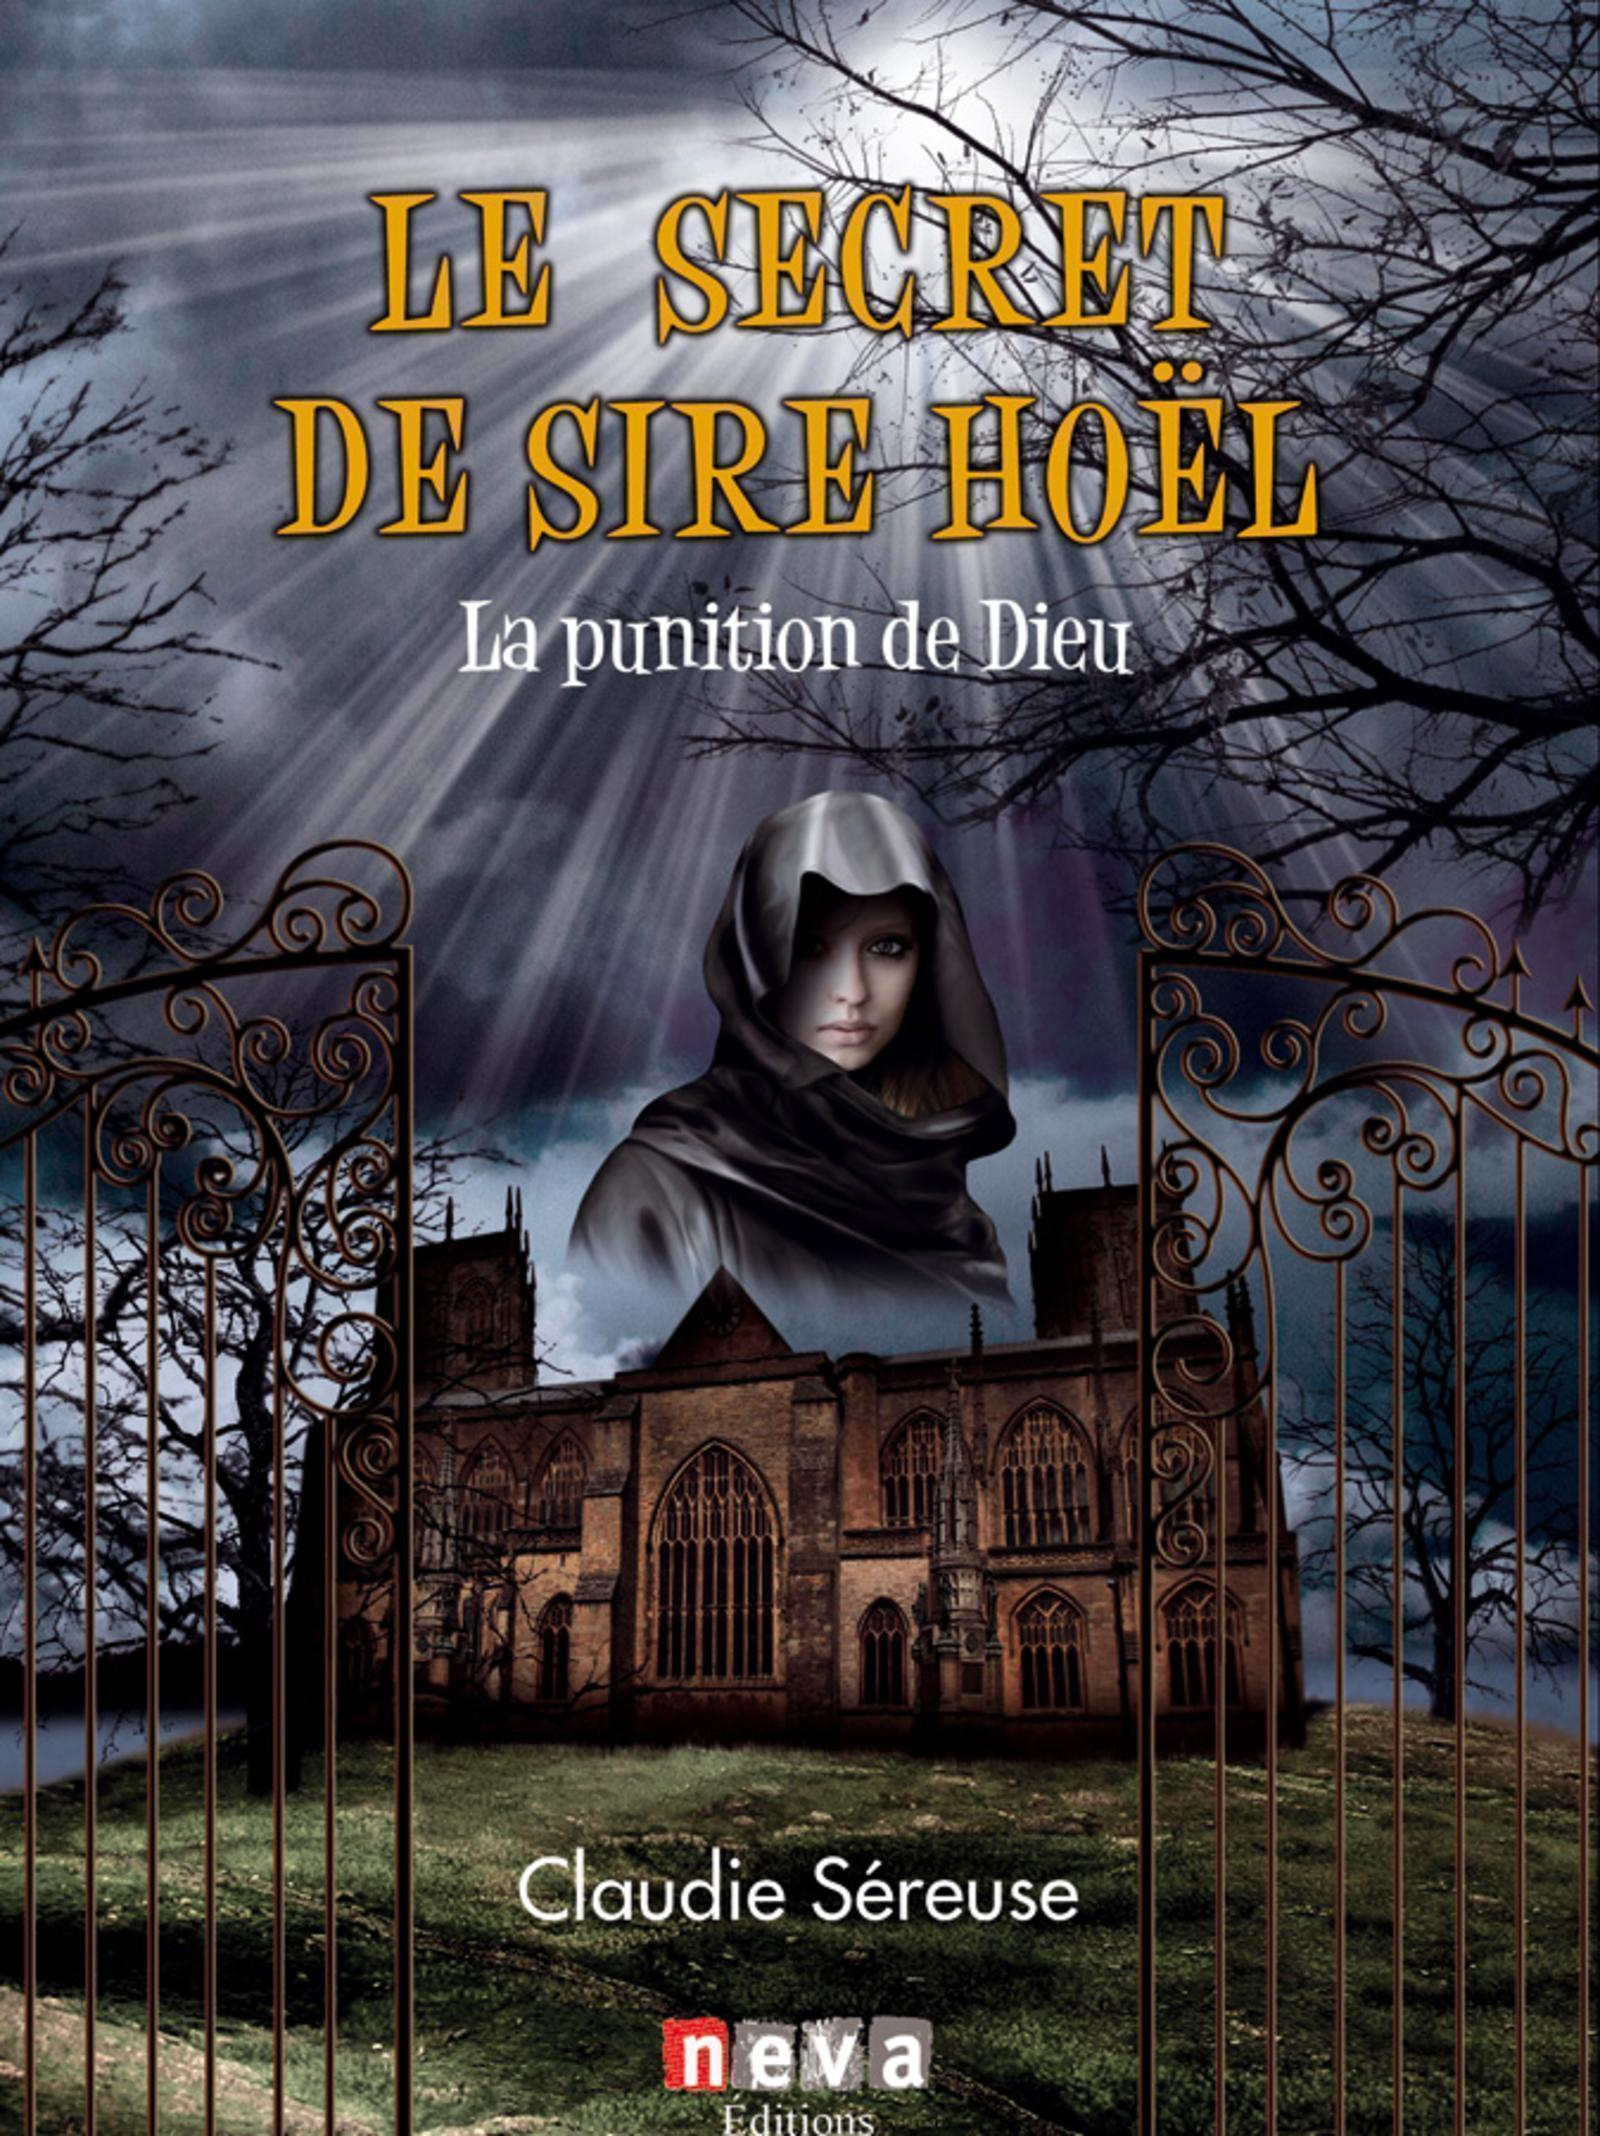 LE SECRET DE SIRE HOEL  TOME 1 LA PUNITION DE DIEU